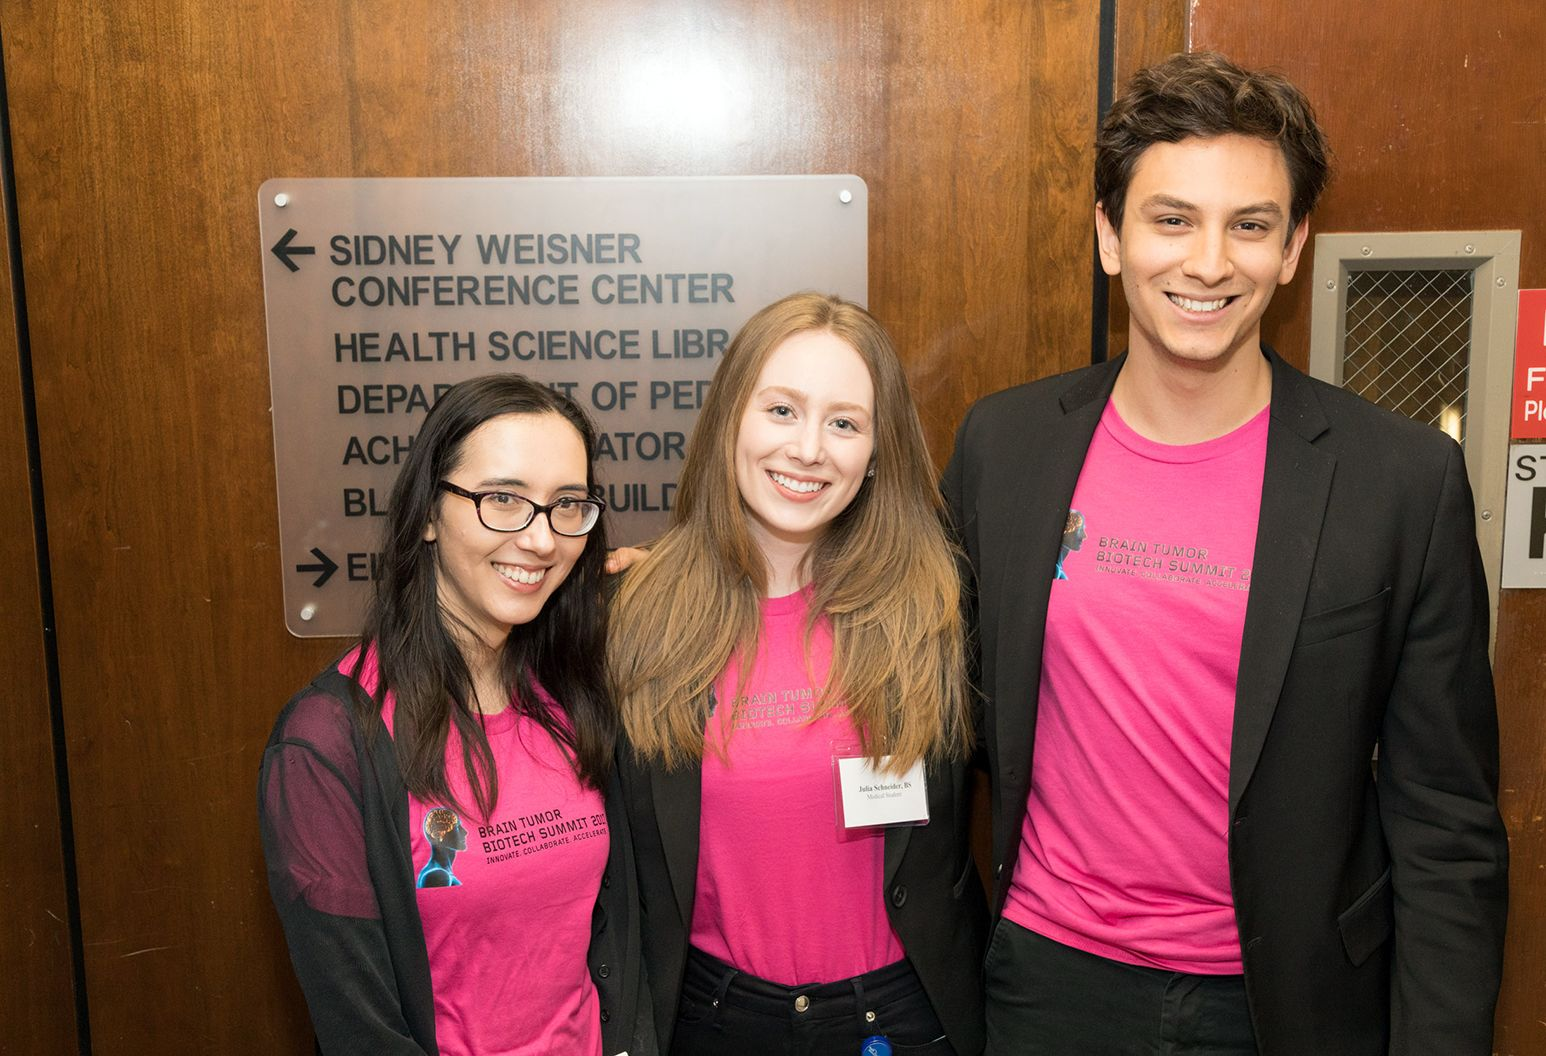 Three young medical students who are wearing matching pink shirt pose for a group photograph